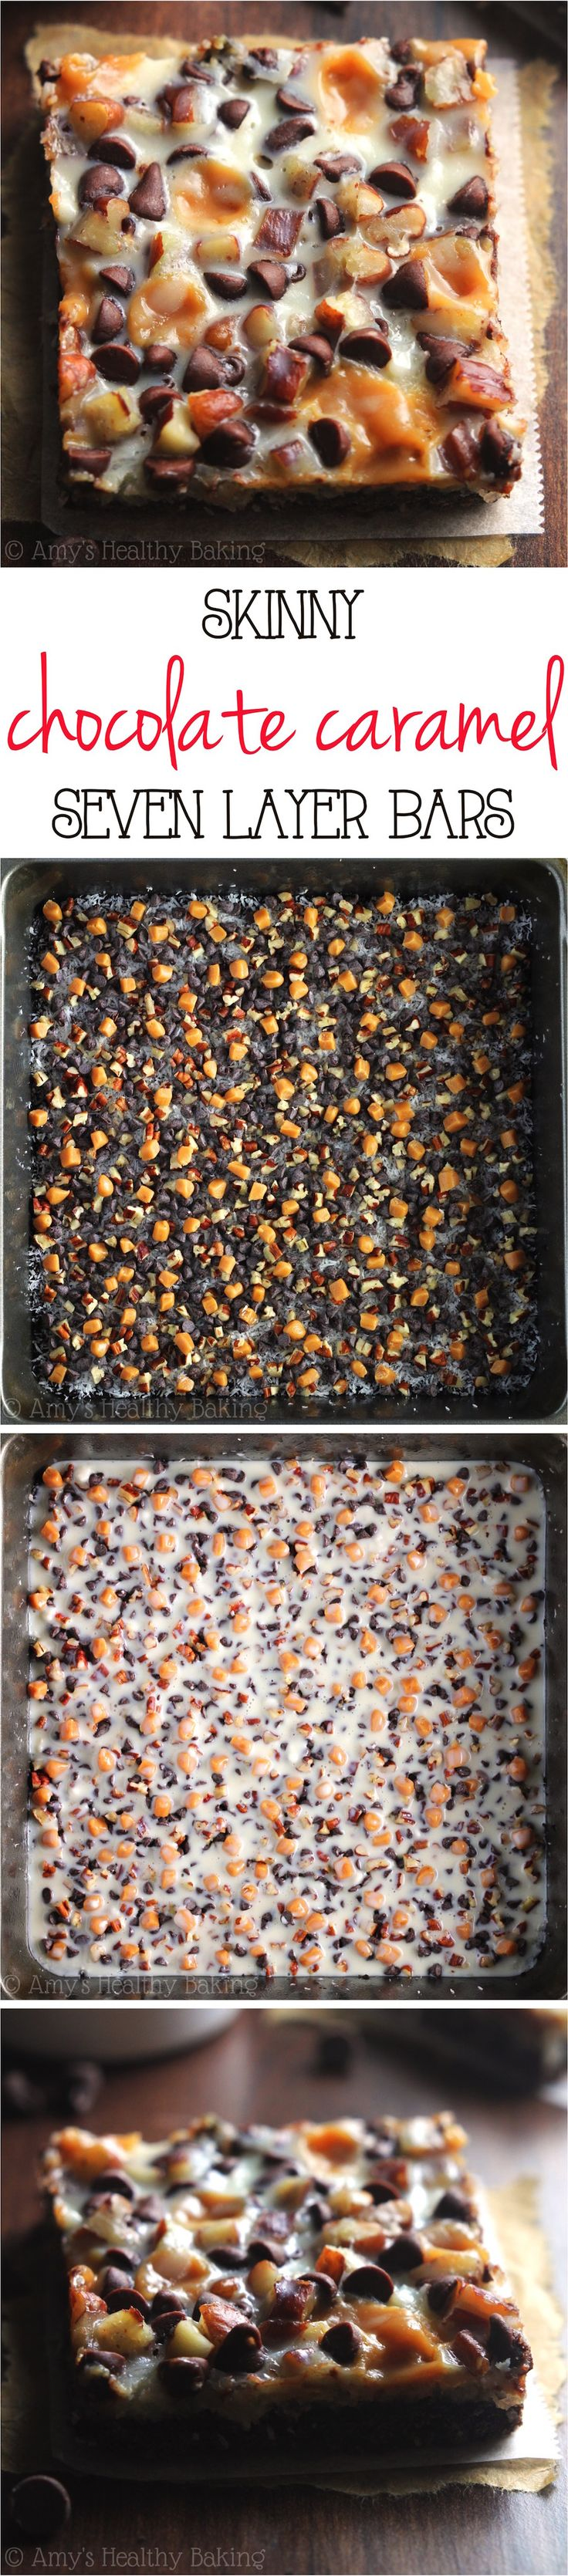 Skinny Seven Layer Bars – with 3 simple swaps, these chocolaty magic bars have all of the decadence but NONE of the guilt! They don't taste healthy at all!